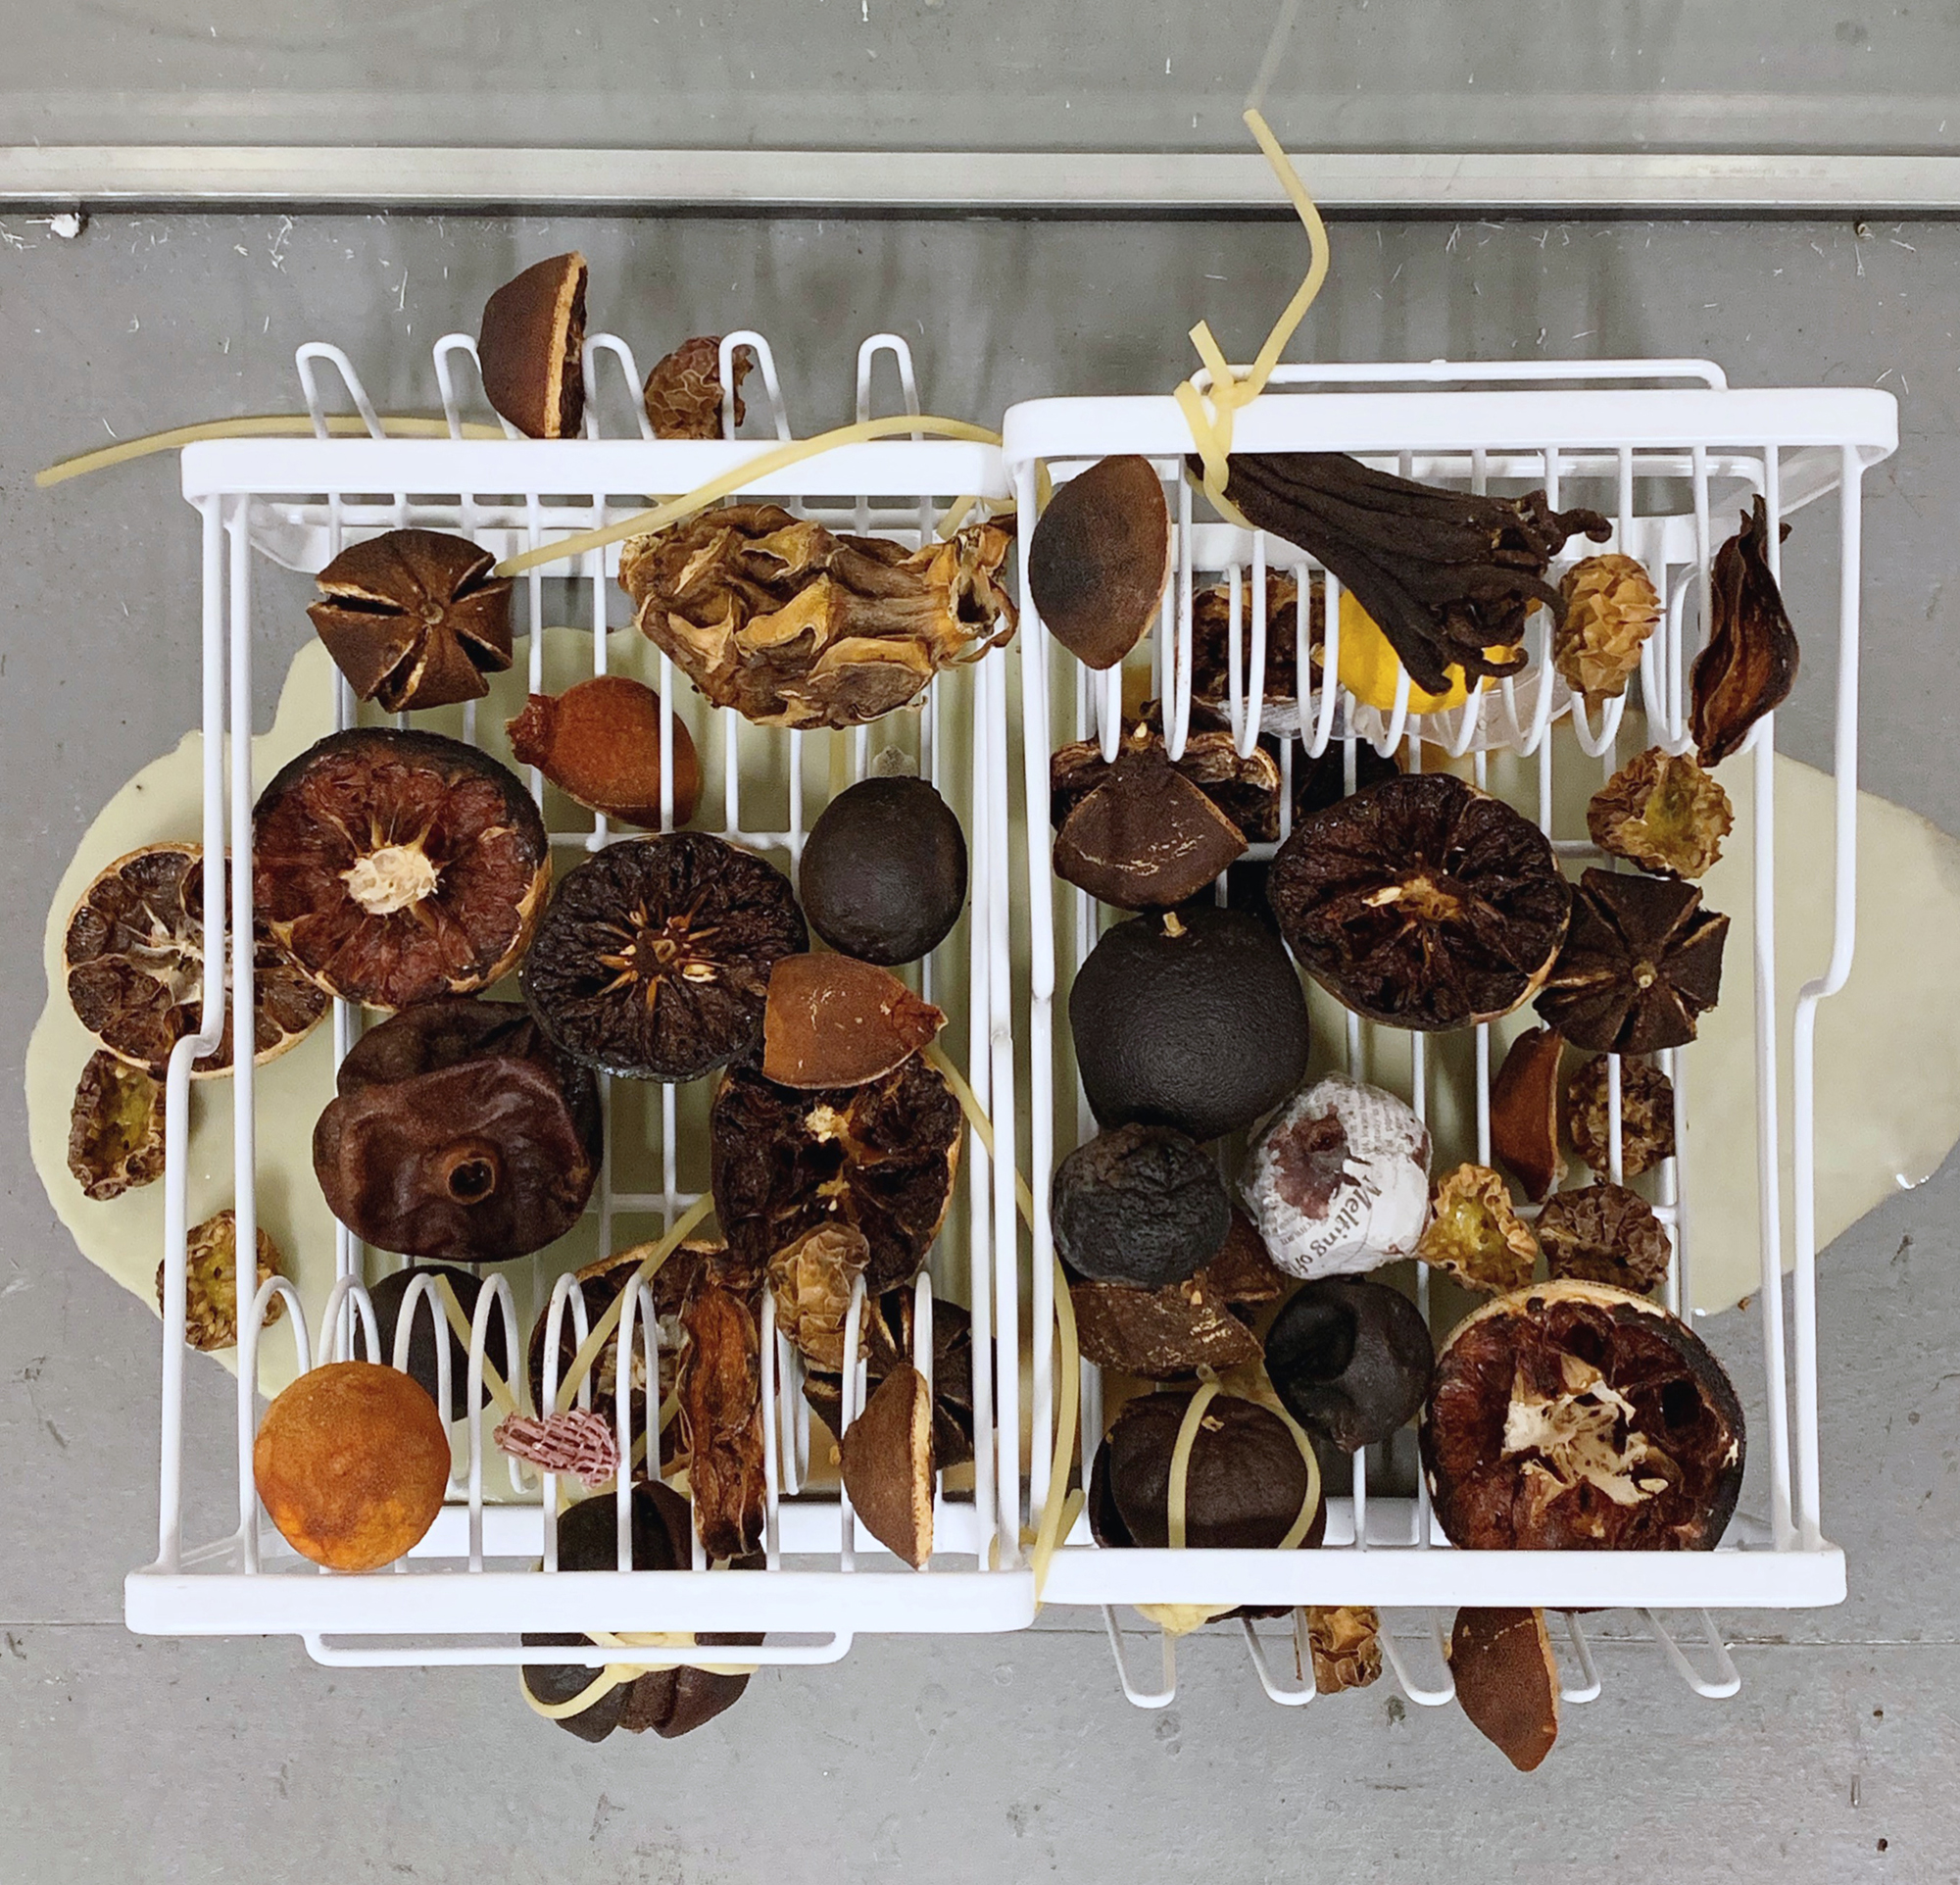 Seeking The Common Ground  (detail) 2019 Mini freezer, handmade popsicles with newspaper confetti, dish racks, preserved tropical fruit, frozen cube fruit, plant lights  18 x 19 x 27 inches